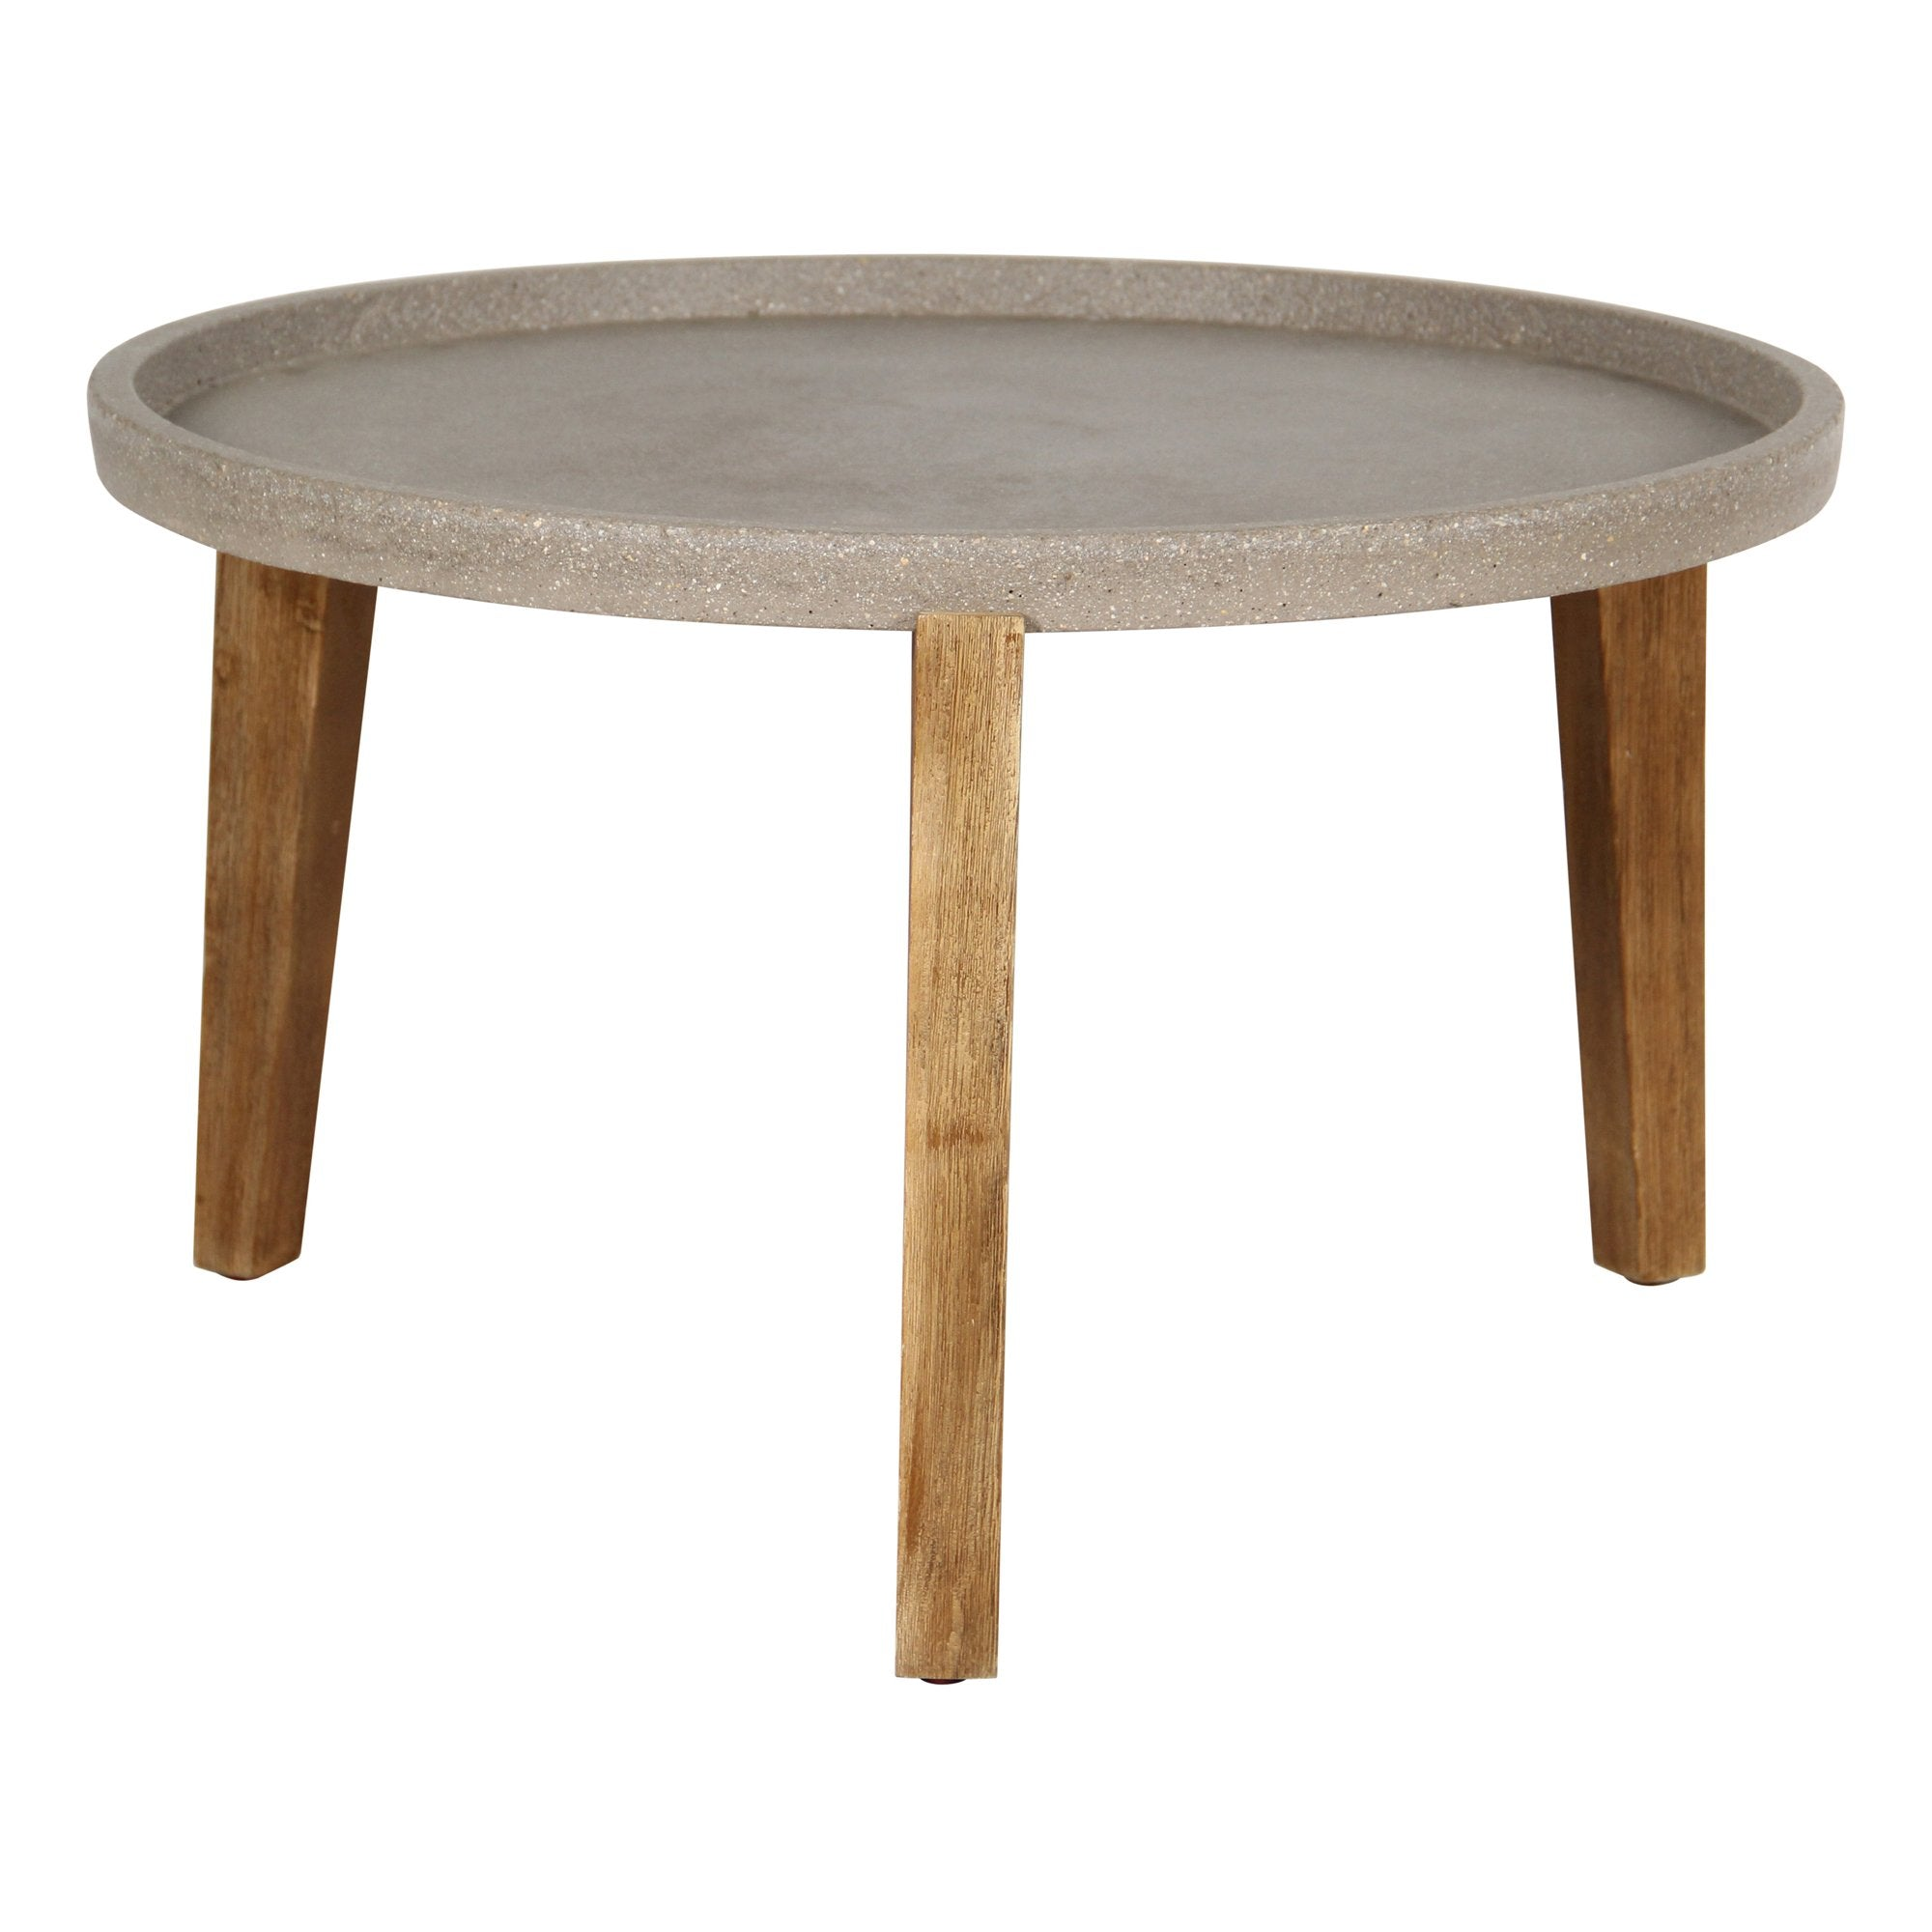 Picture of Patio Large Round Garden Table